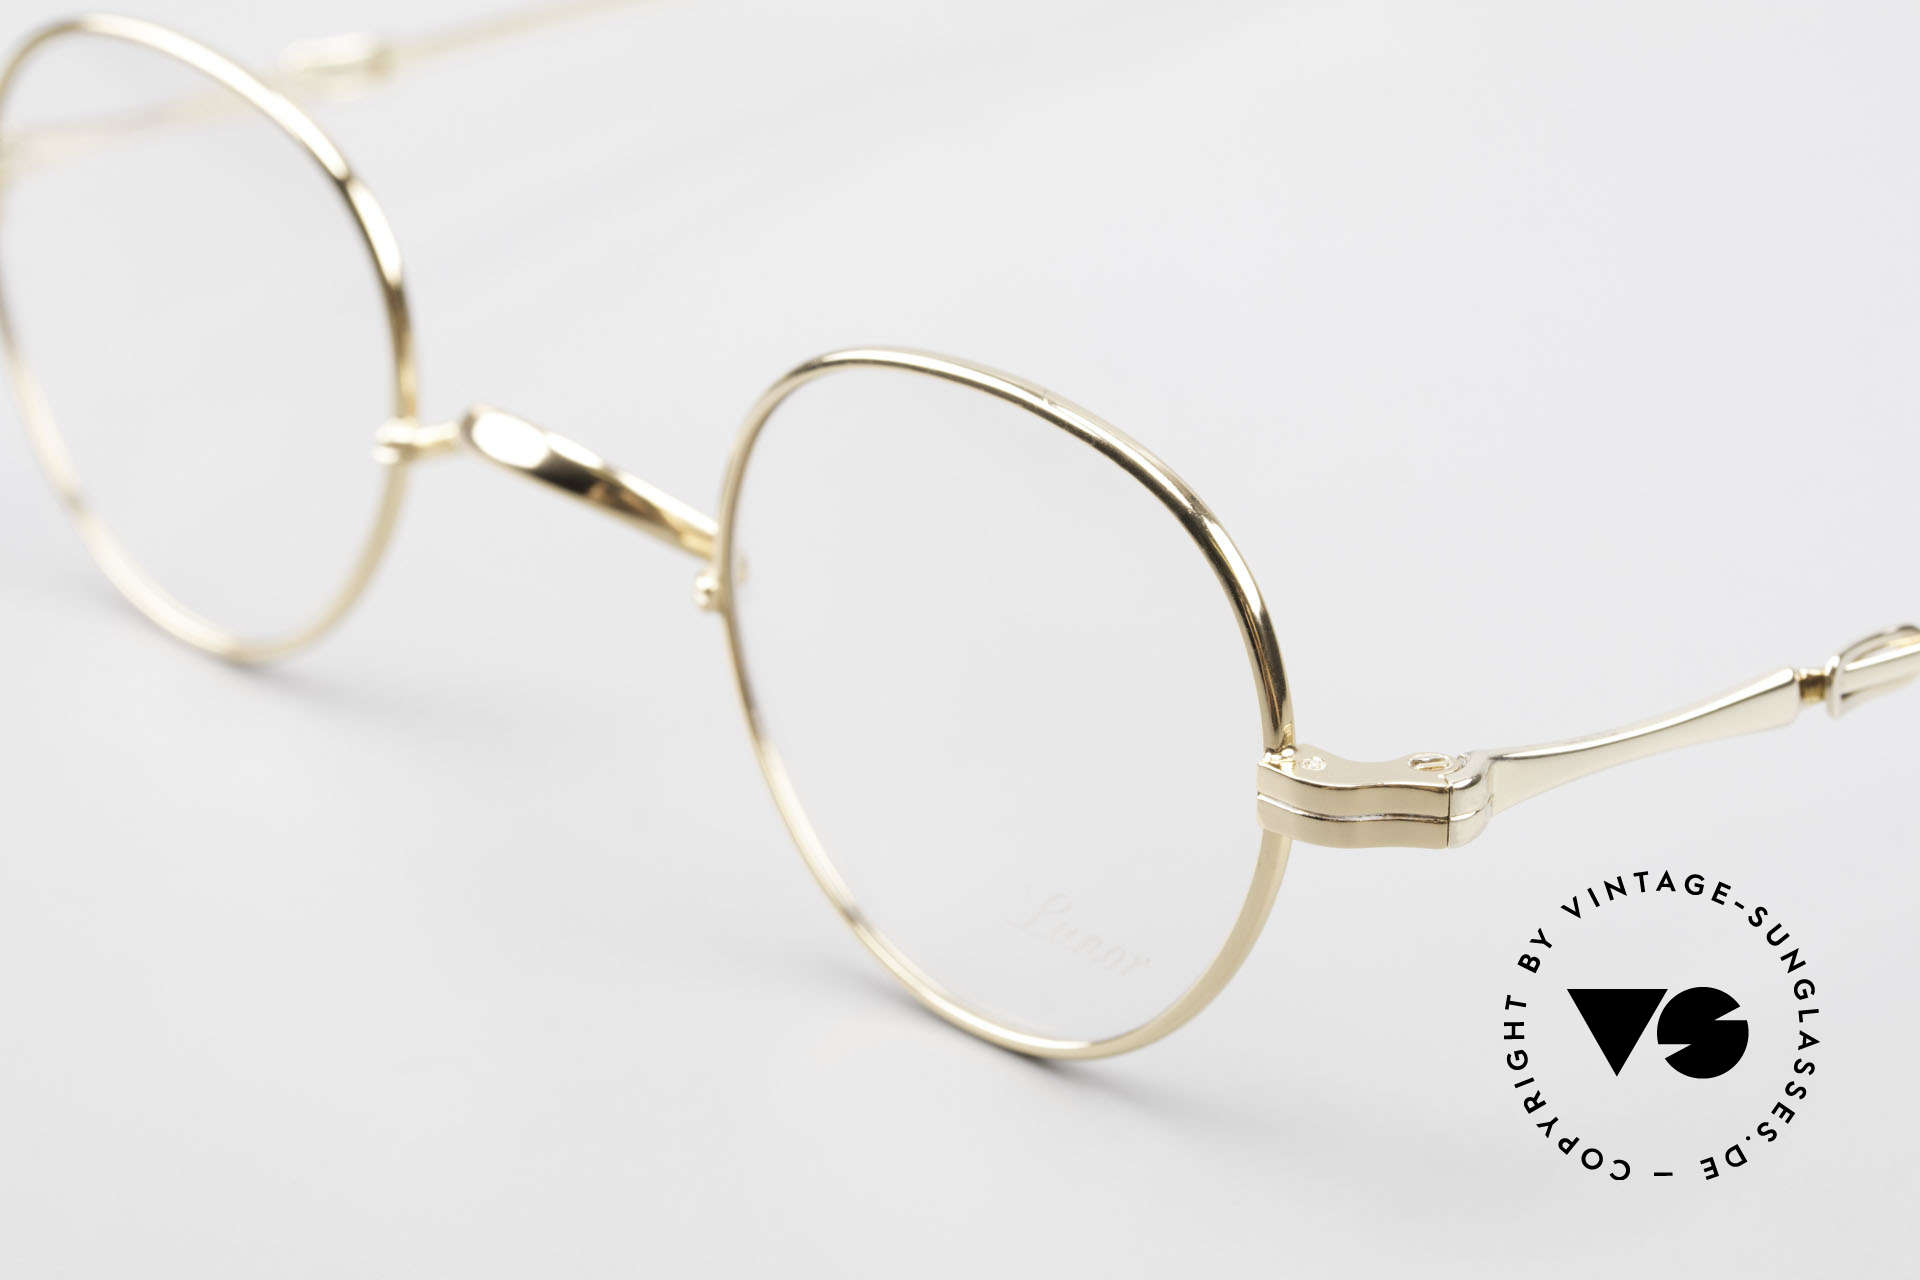 Lunor I 15 Telescopic Gold Plated Sliding Temples, as well as for the brilliant telescopic / extendable arms, Made for Men and Women